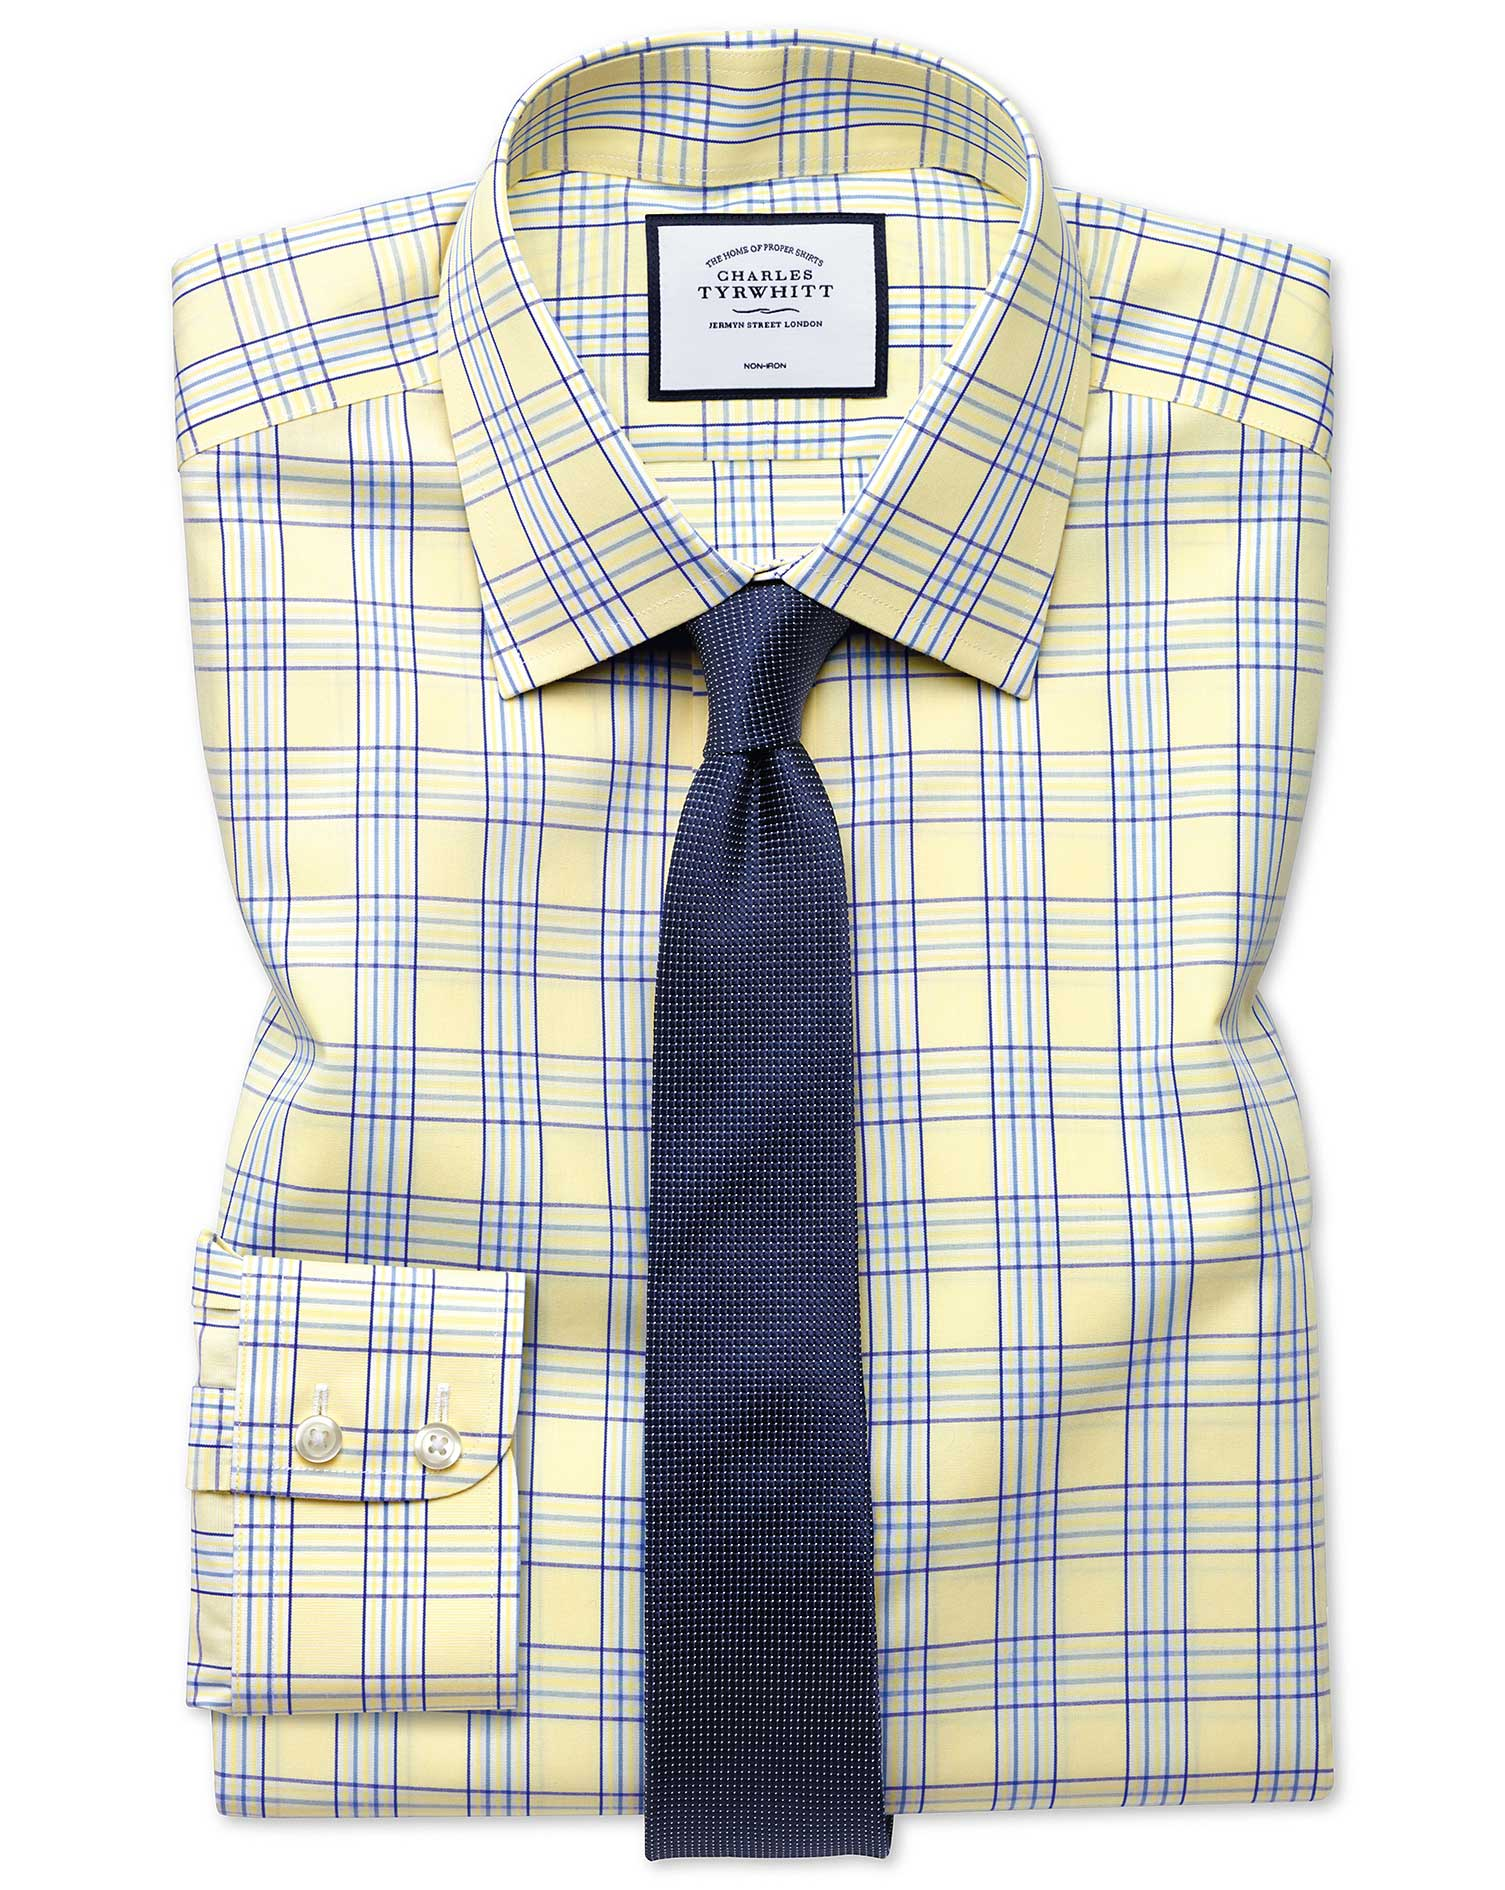 Extra Slim Fit Non-Iron Prince Of Wales Yellow Cotton Formal Shirt Single Cuff Size 15.5/32 by Charl